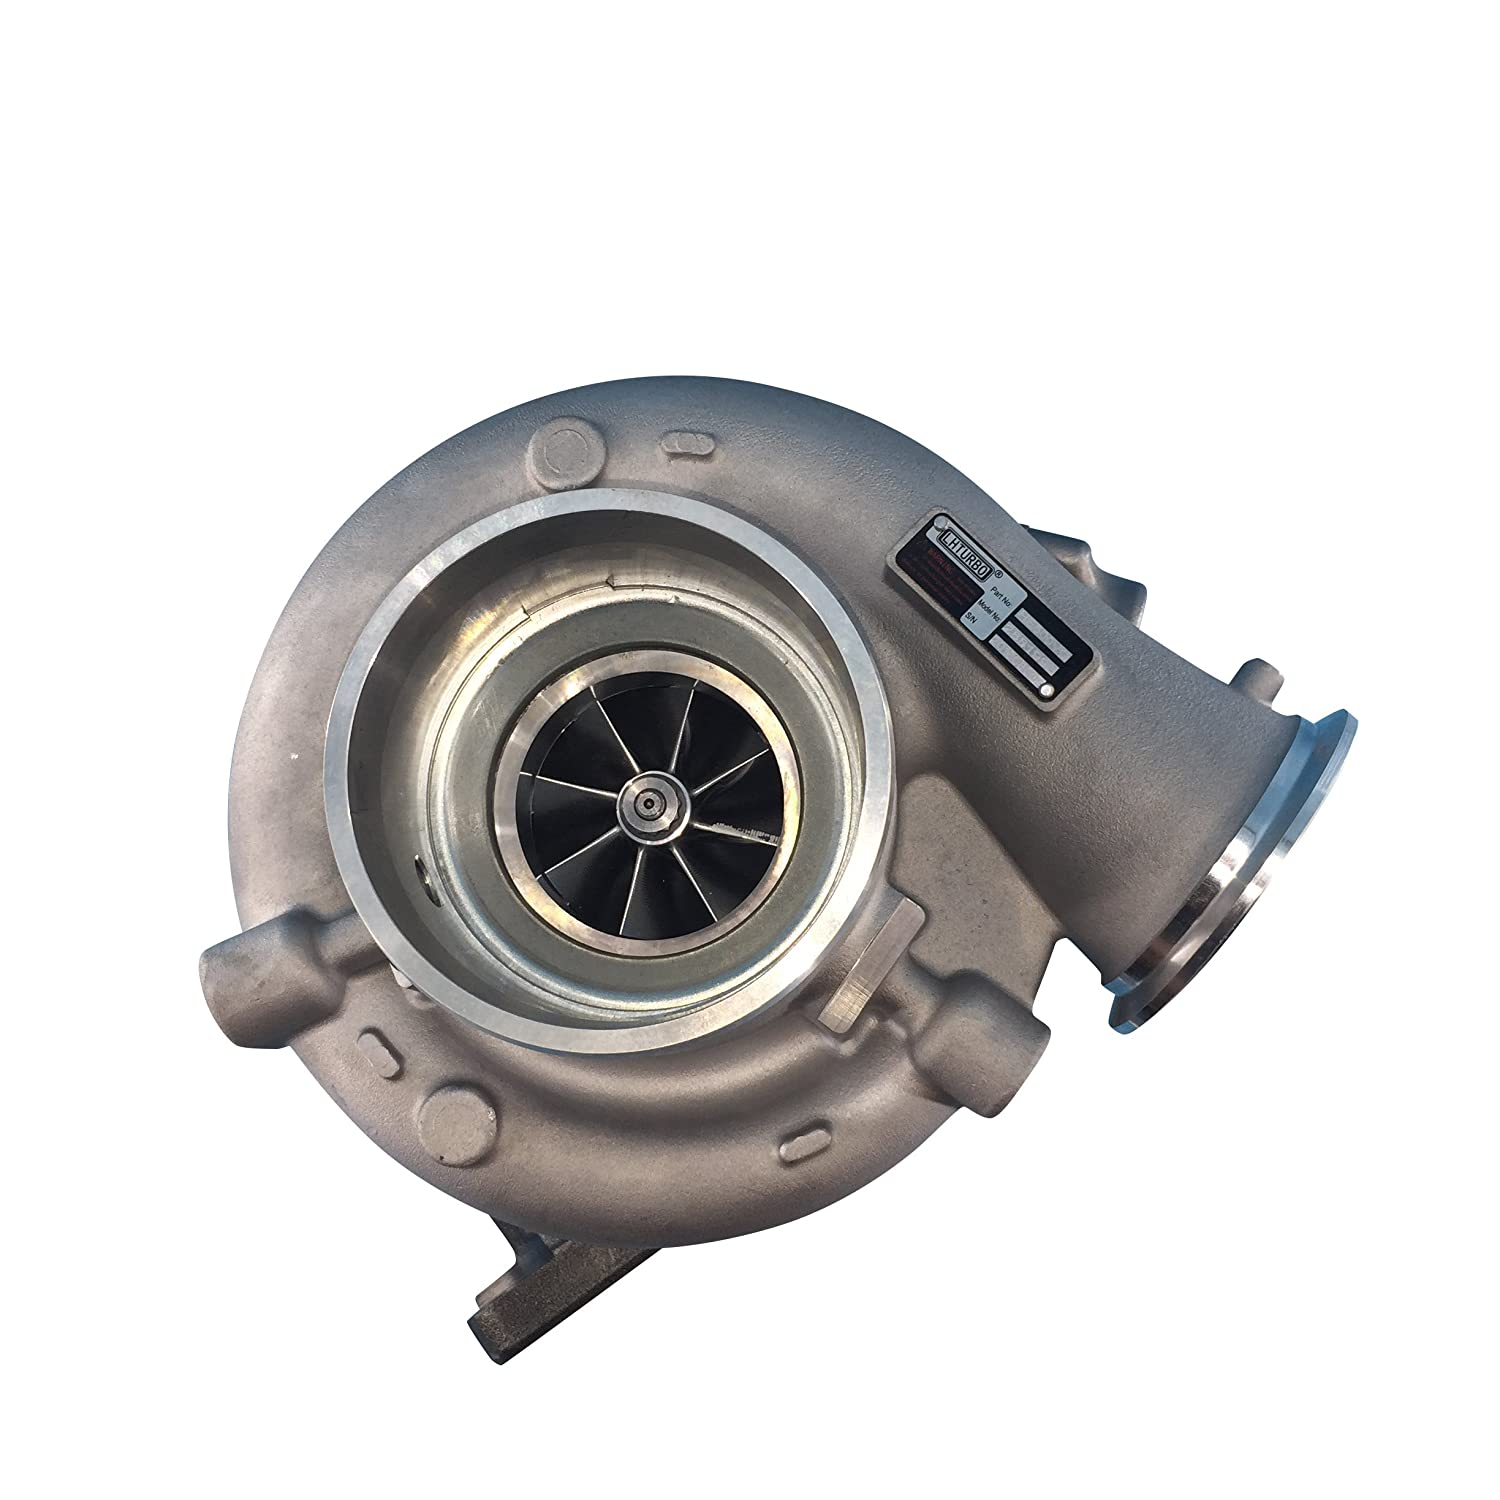 Amazon.com: New Turbo 4043225/2881994 Turbocharger for Cummins ISX (Turbo with billet compressor wheel): Automotive